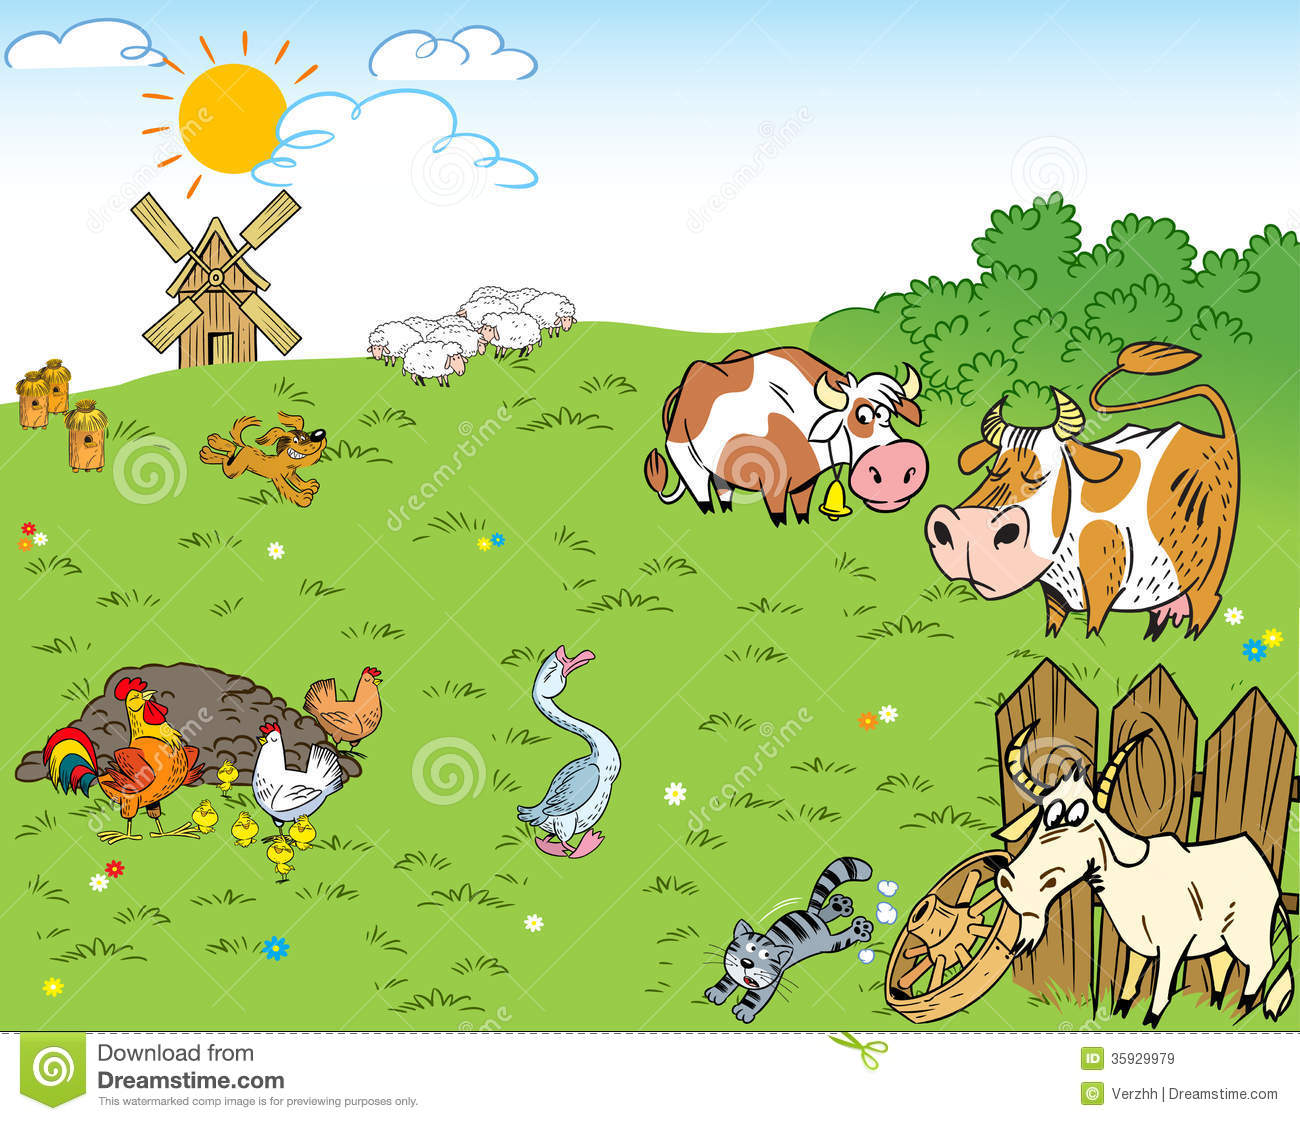 The Illustration Shows The Farmyard And Meadow On Which The Farm